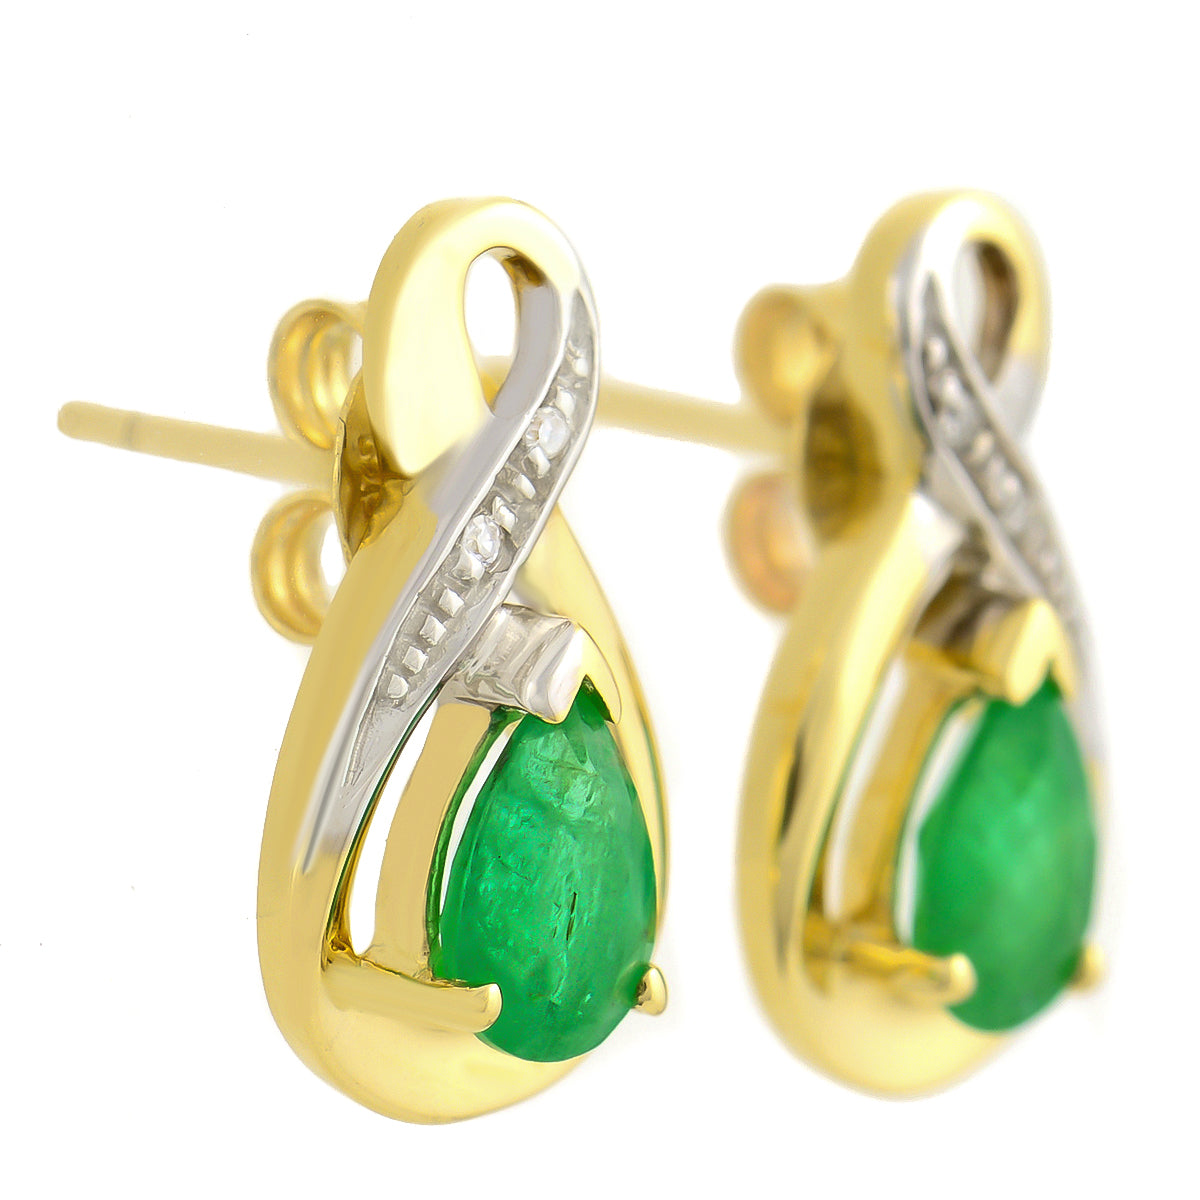 9K SOLID YELLOW GOLD 1.10CT NATURAL PEAR CUT EMERALD EARRINGS WITH FOUR DIAMONDS.